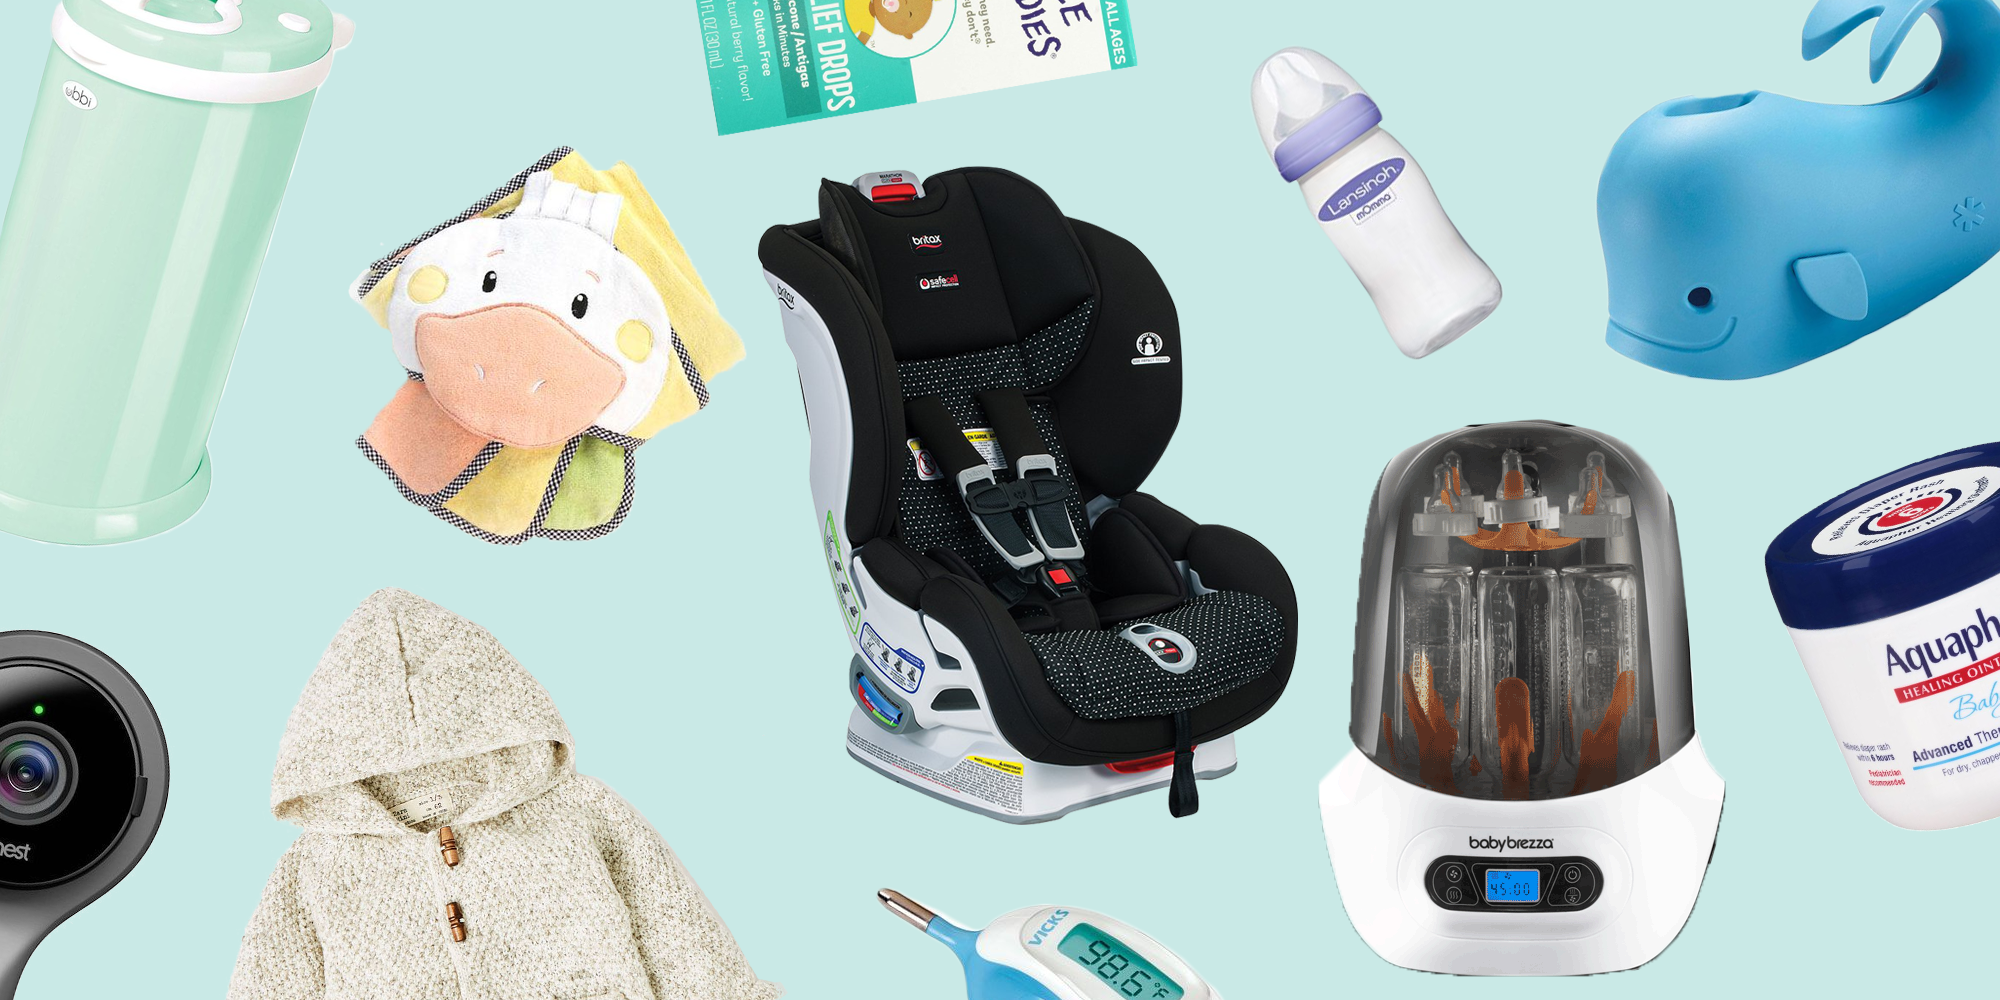 15 Most Popular Baby Items on 2020